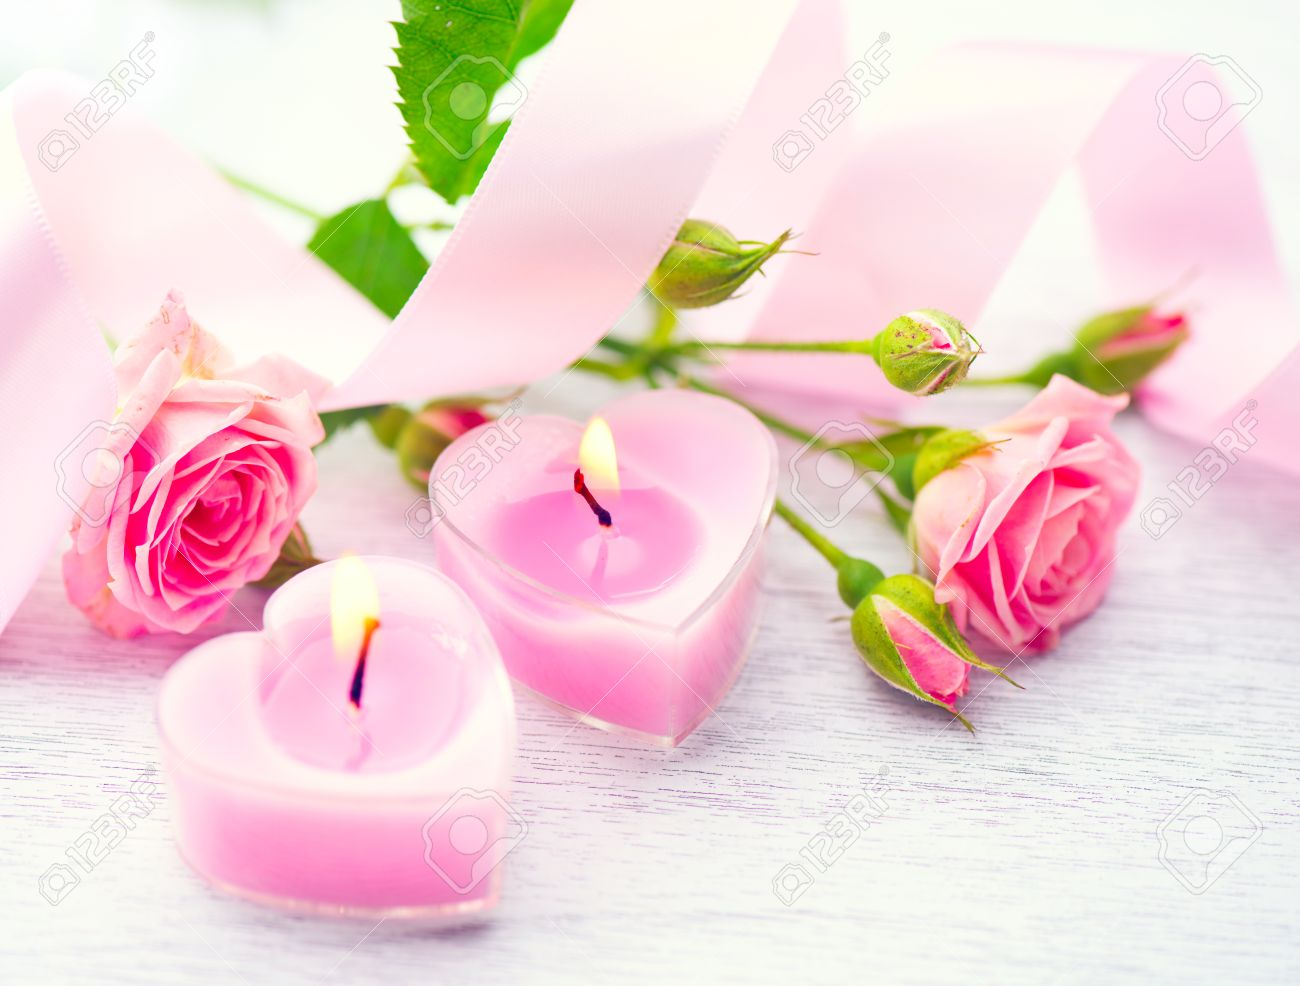 Valentines day pink heart shaped candles and rose flowers stock pink heart shaped candles and rose flowers mightylinksfo